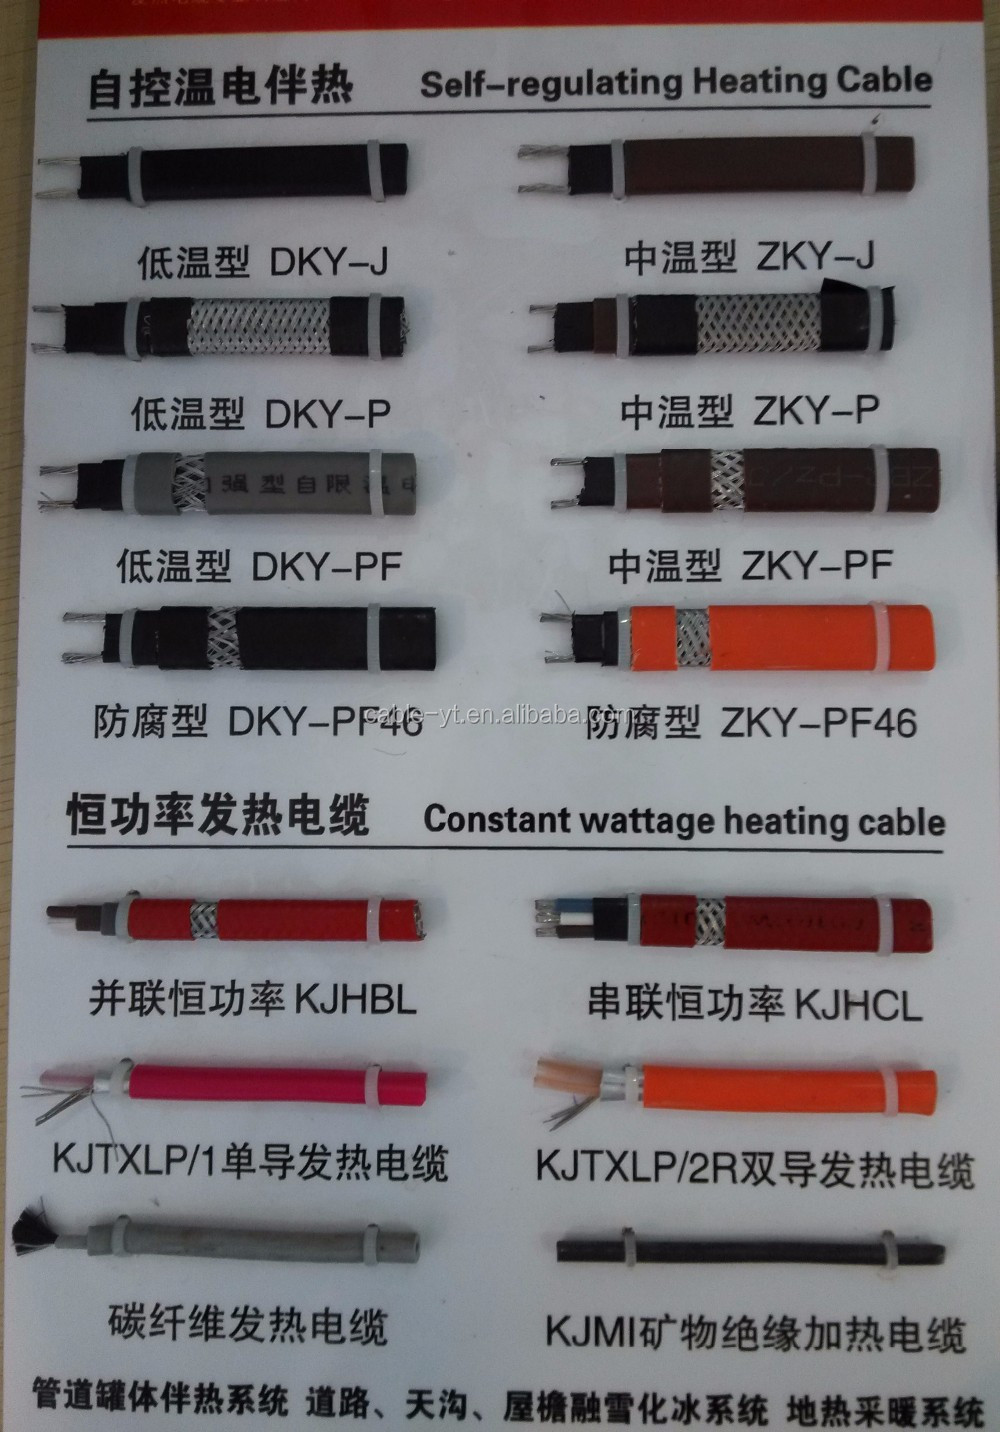 Soil Heat Cable For Low Voltage : Electric low temperature self regulating heating cable